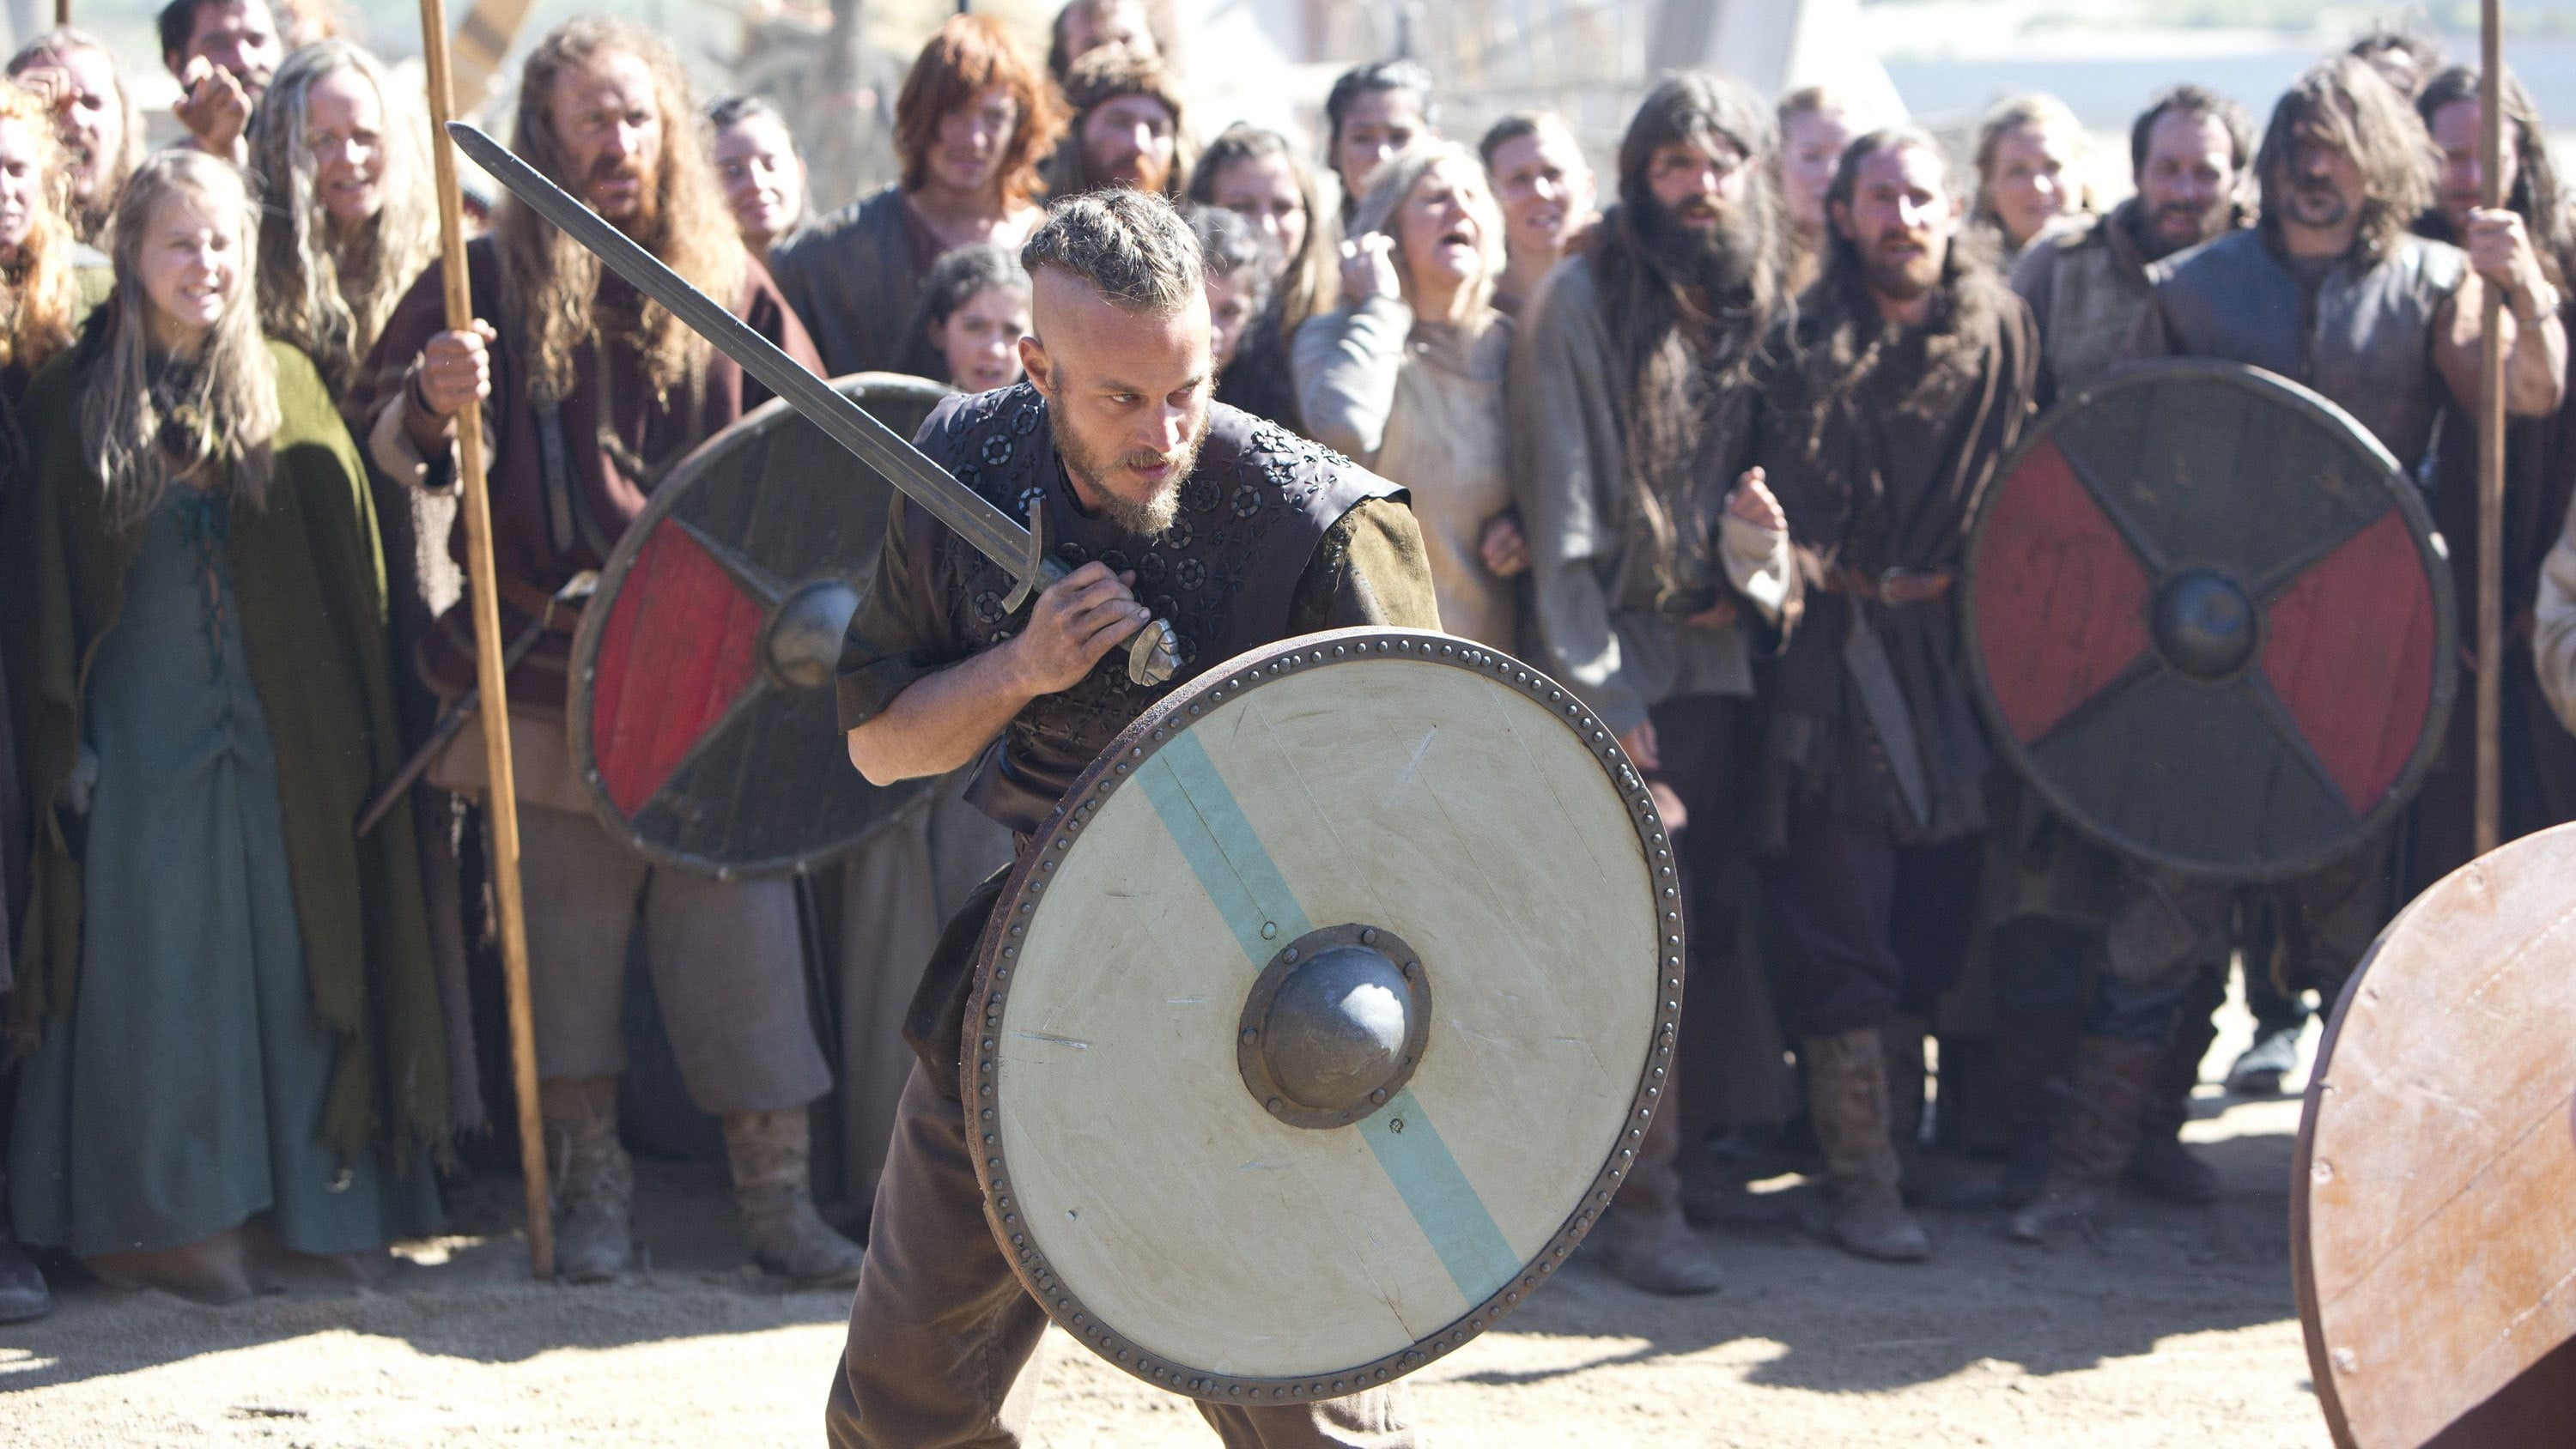 vikings season 1 episode 6 tubeplus